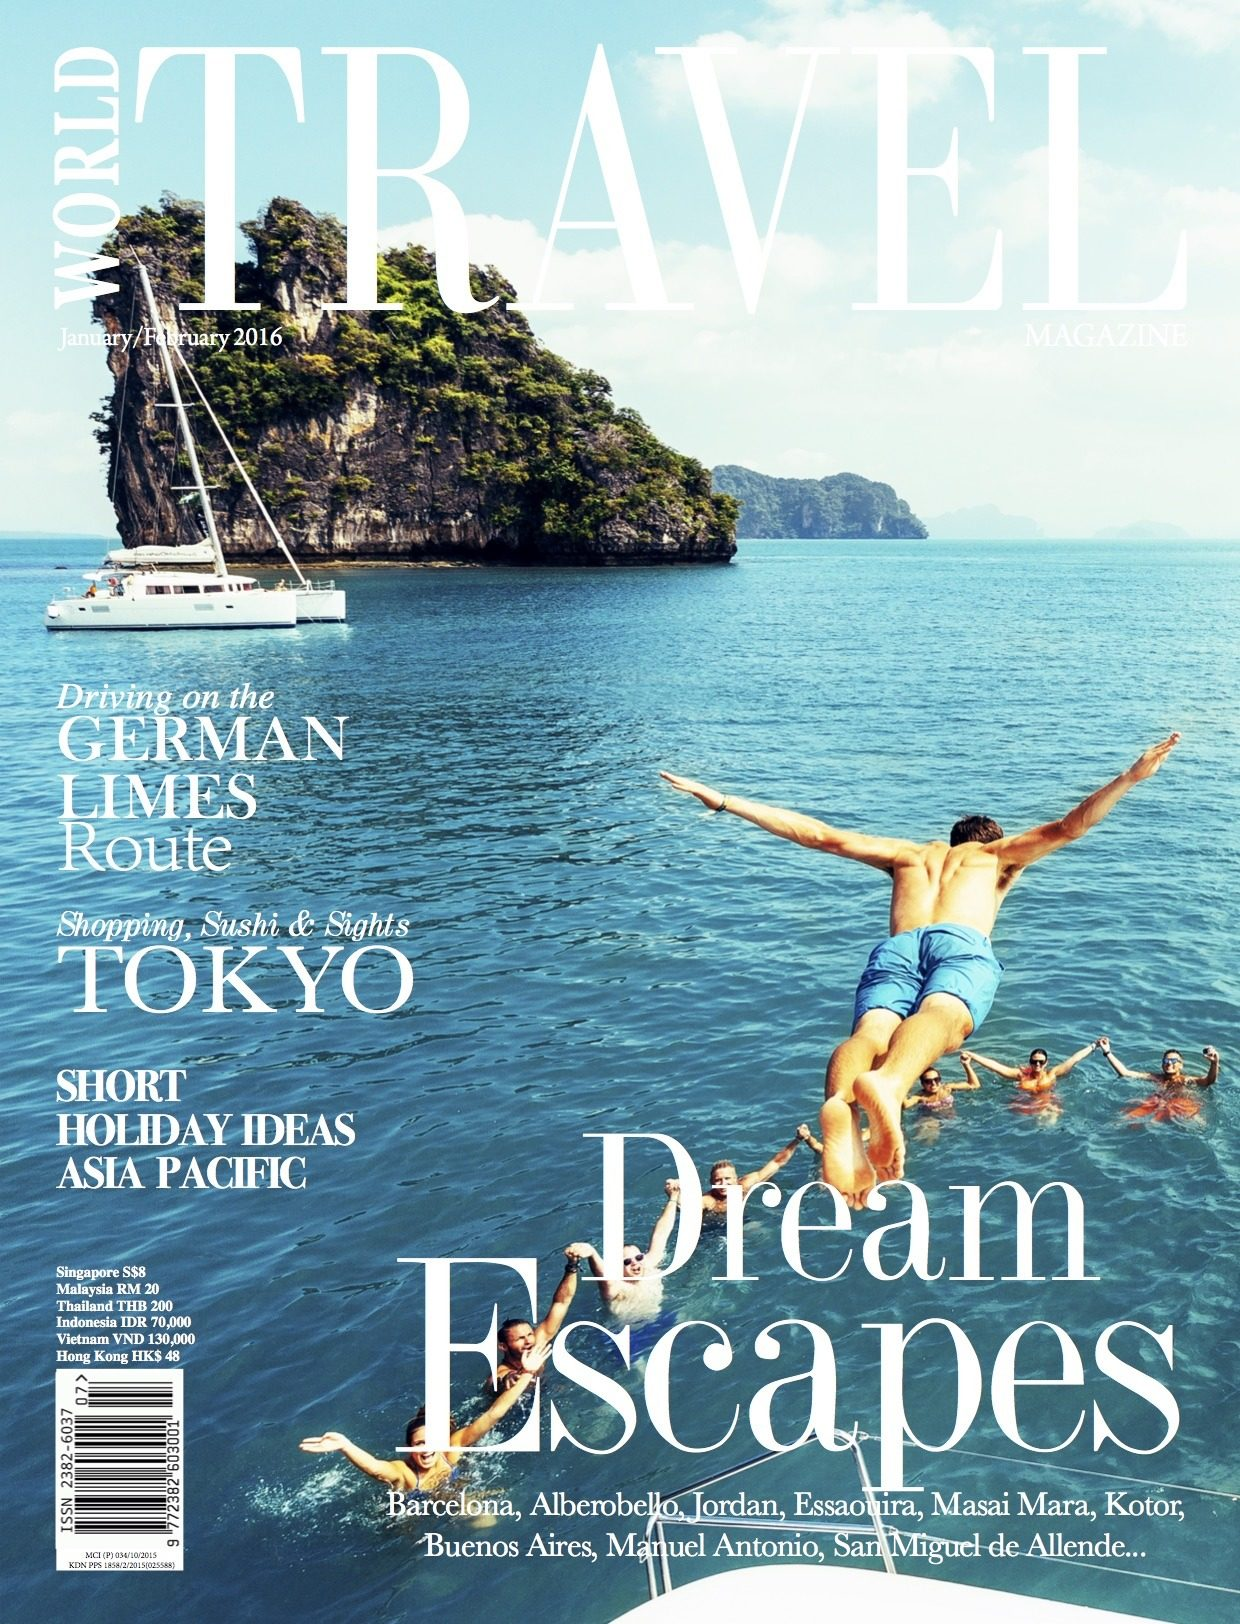 Press Coverage - World Travel Magazine